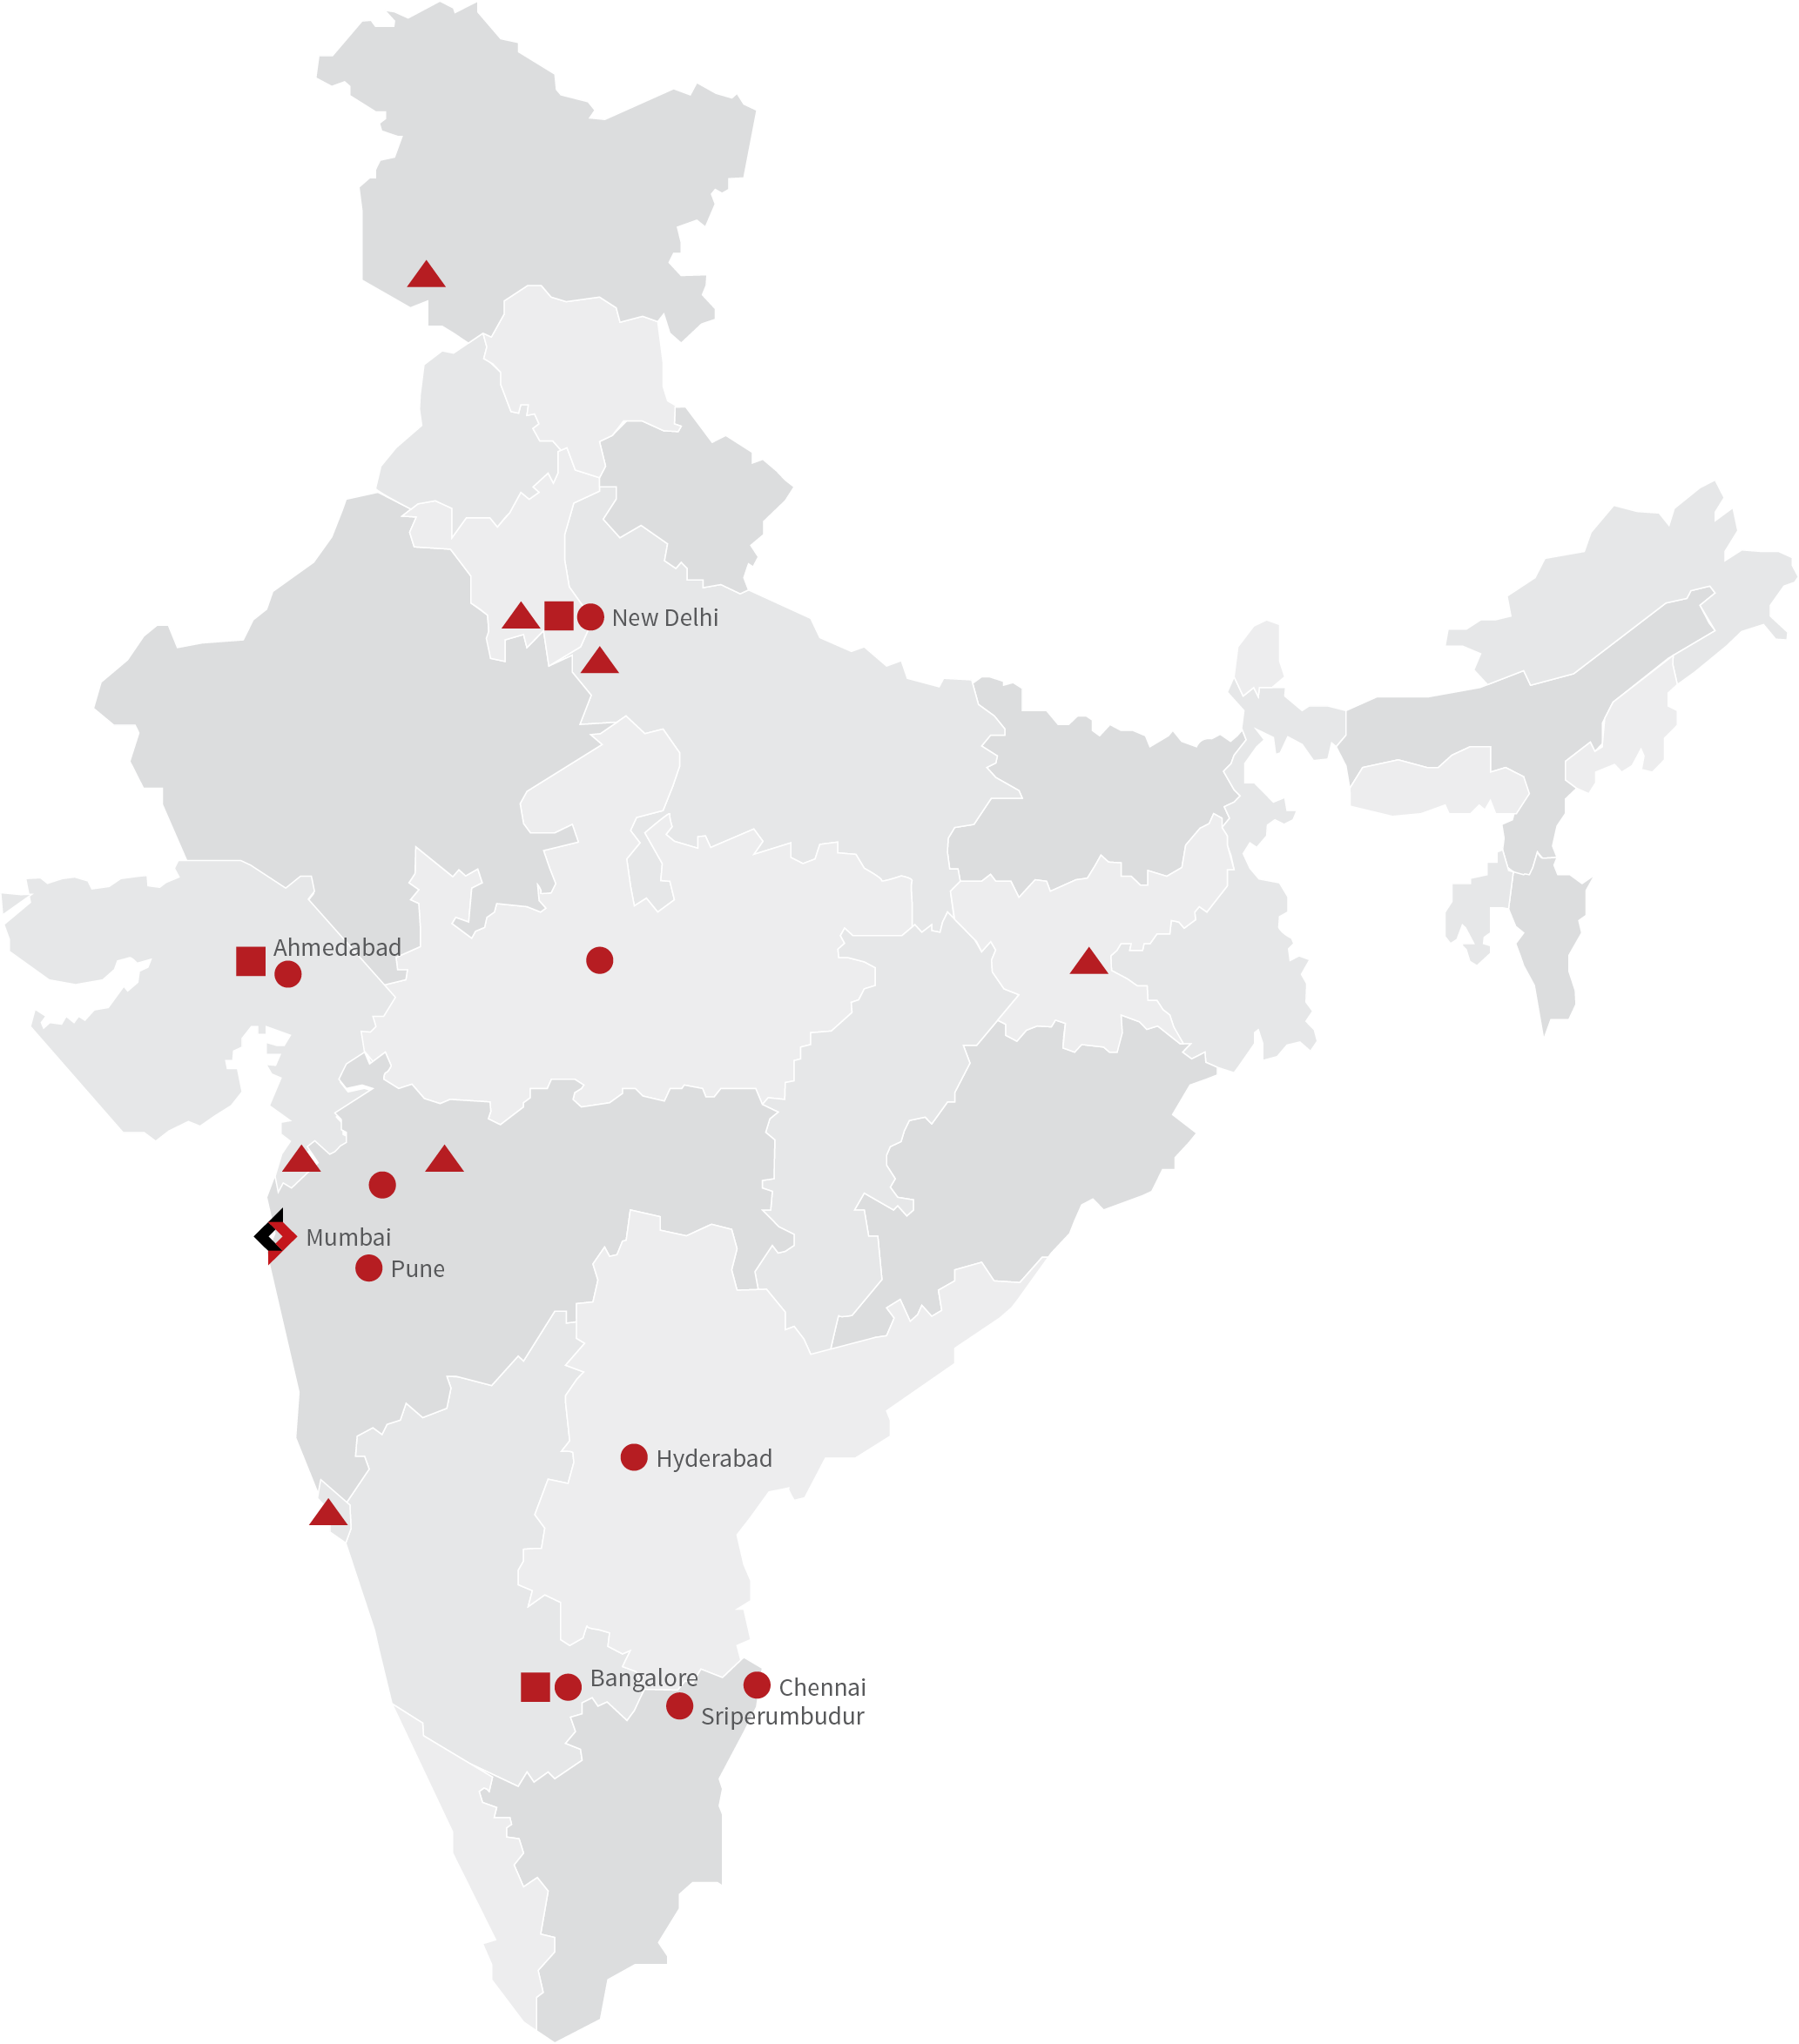 Our Pan India Presence